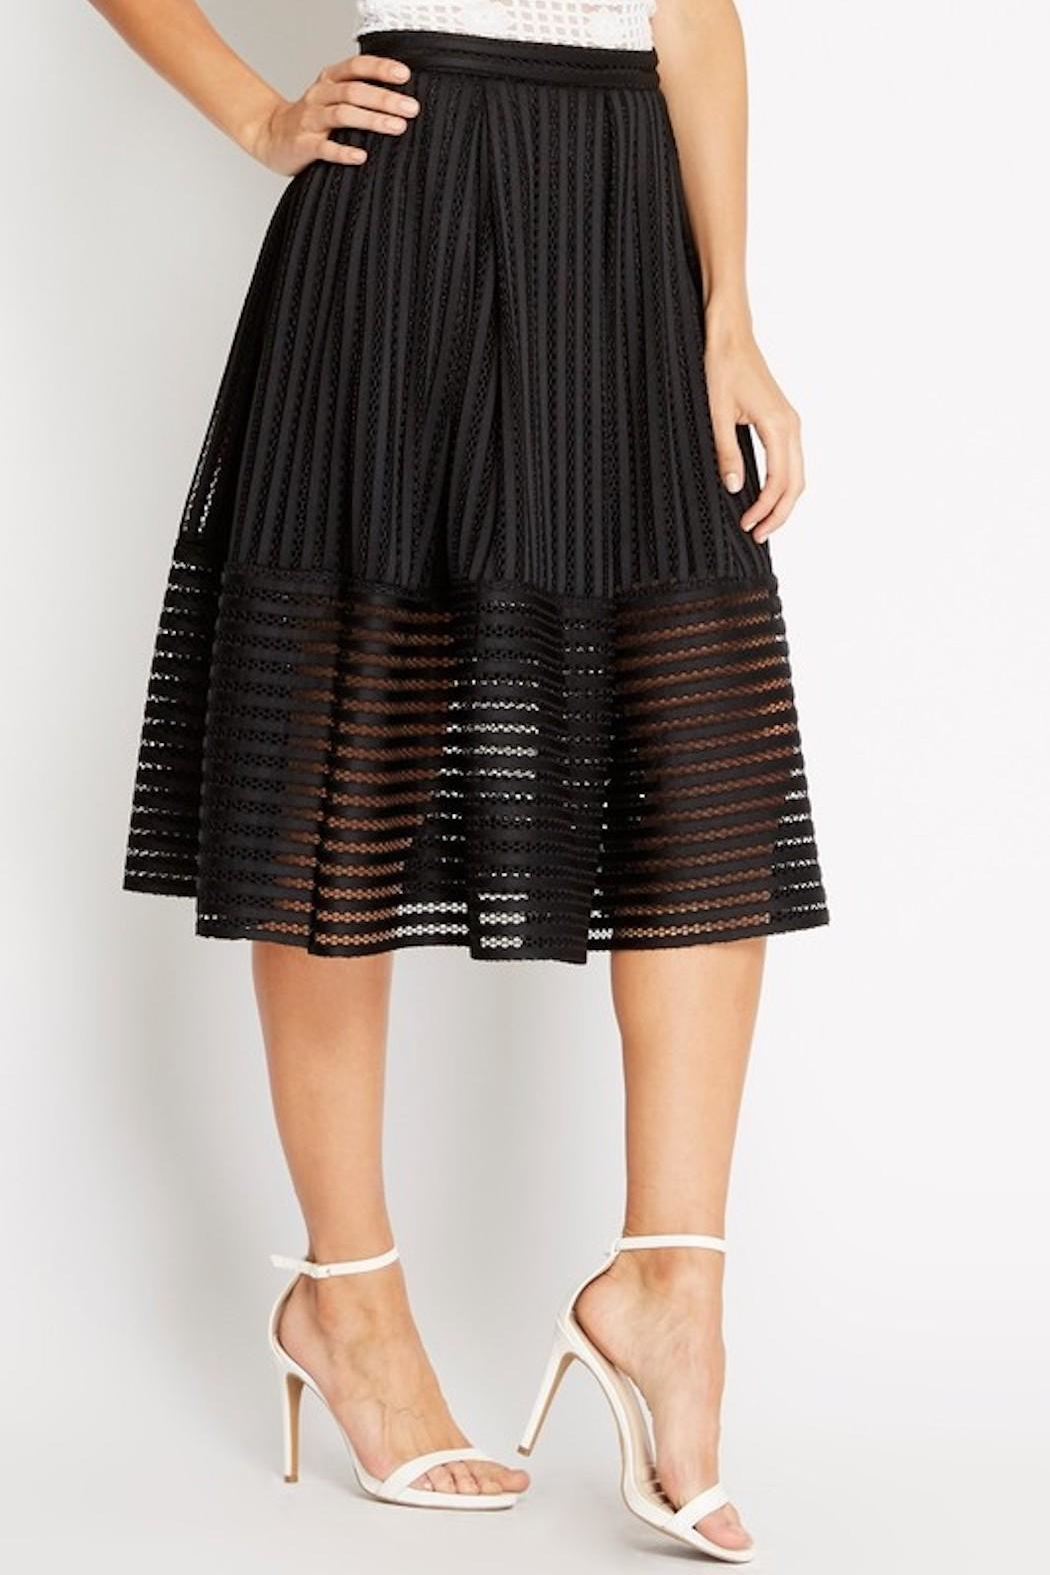 Soprano A-Line Black Skirt - Front Cropped Image